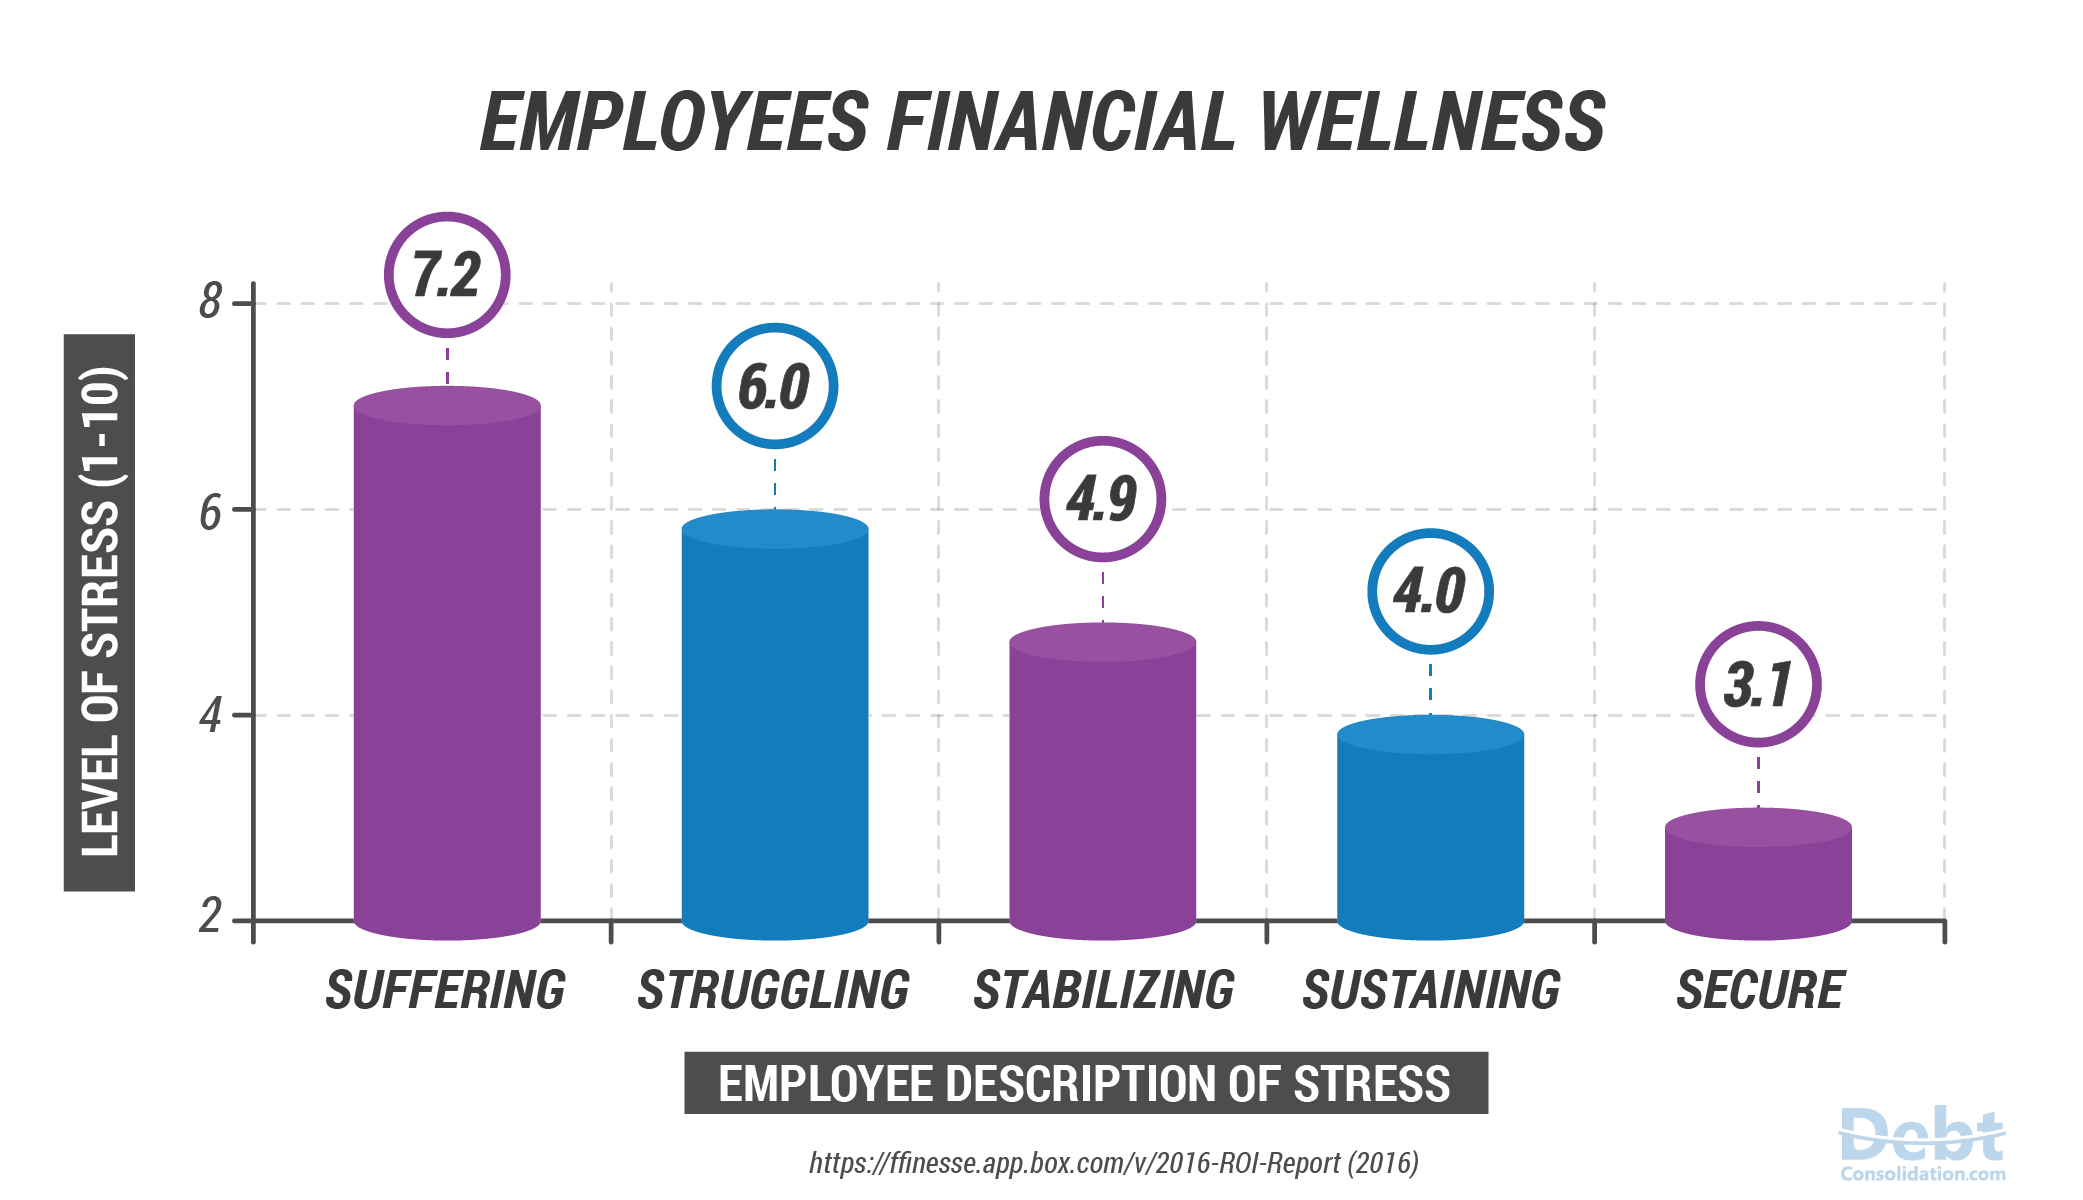 Employees Financial Wellness Statistics